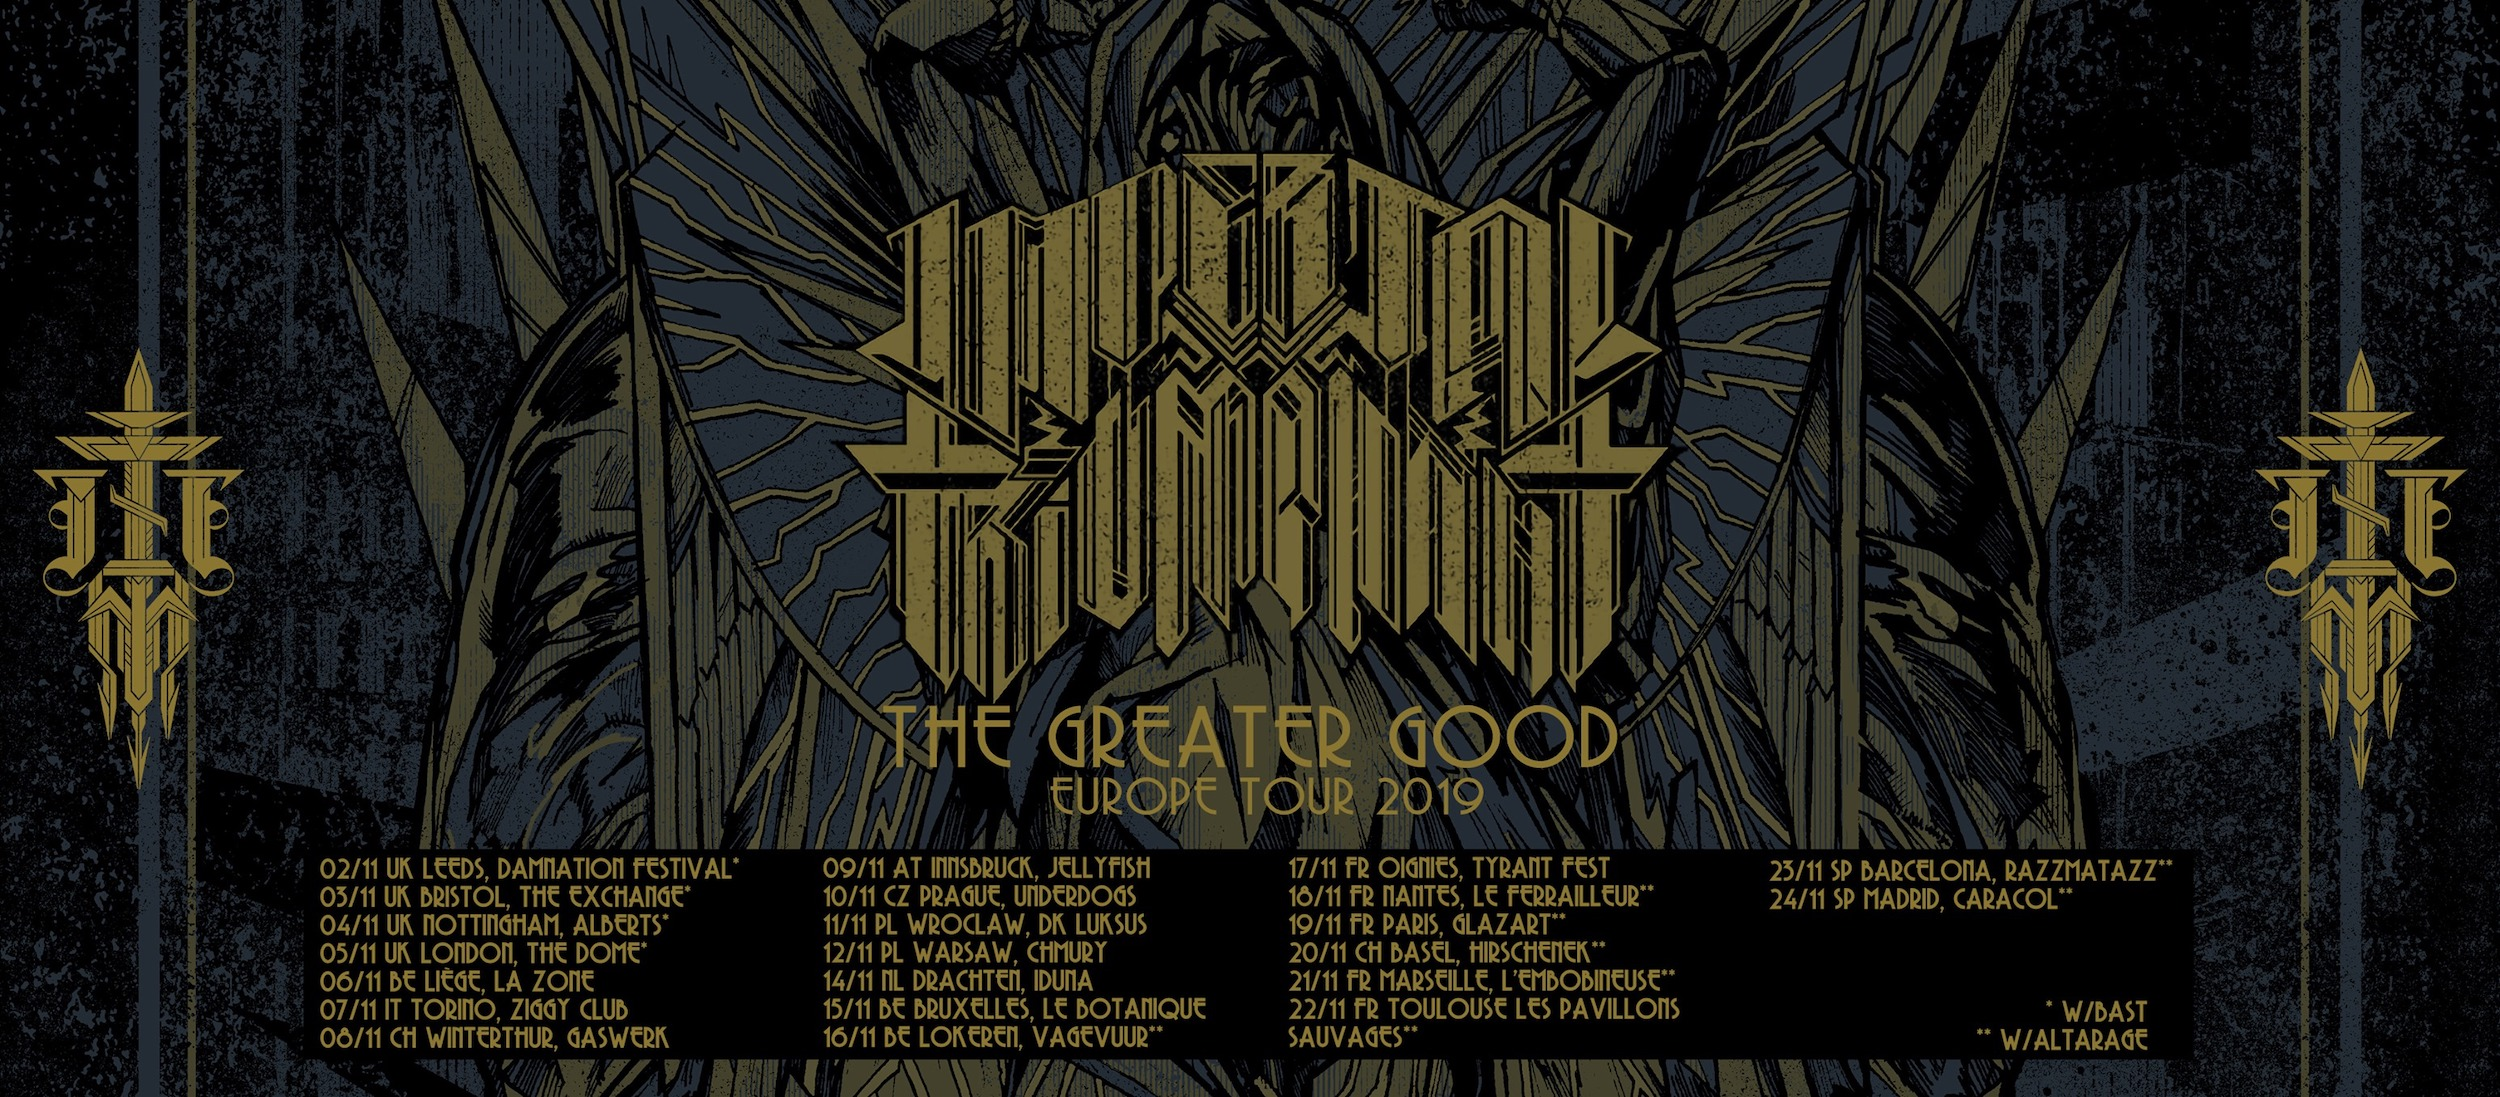 Imperial Triumphant The Greater Good Europe Tour 2019